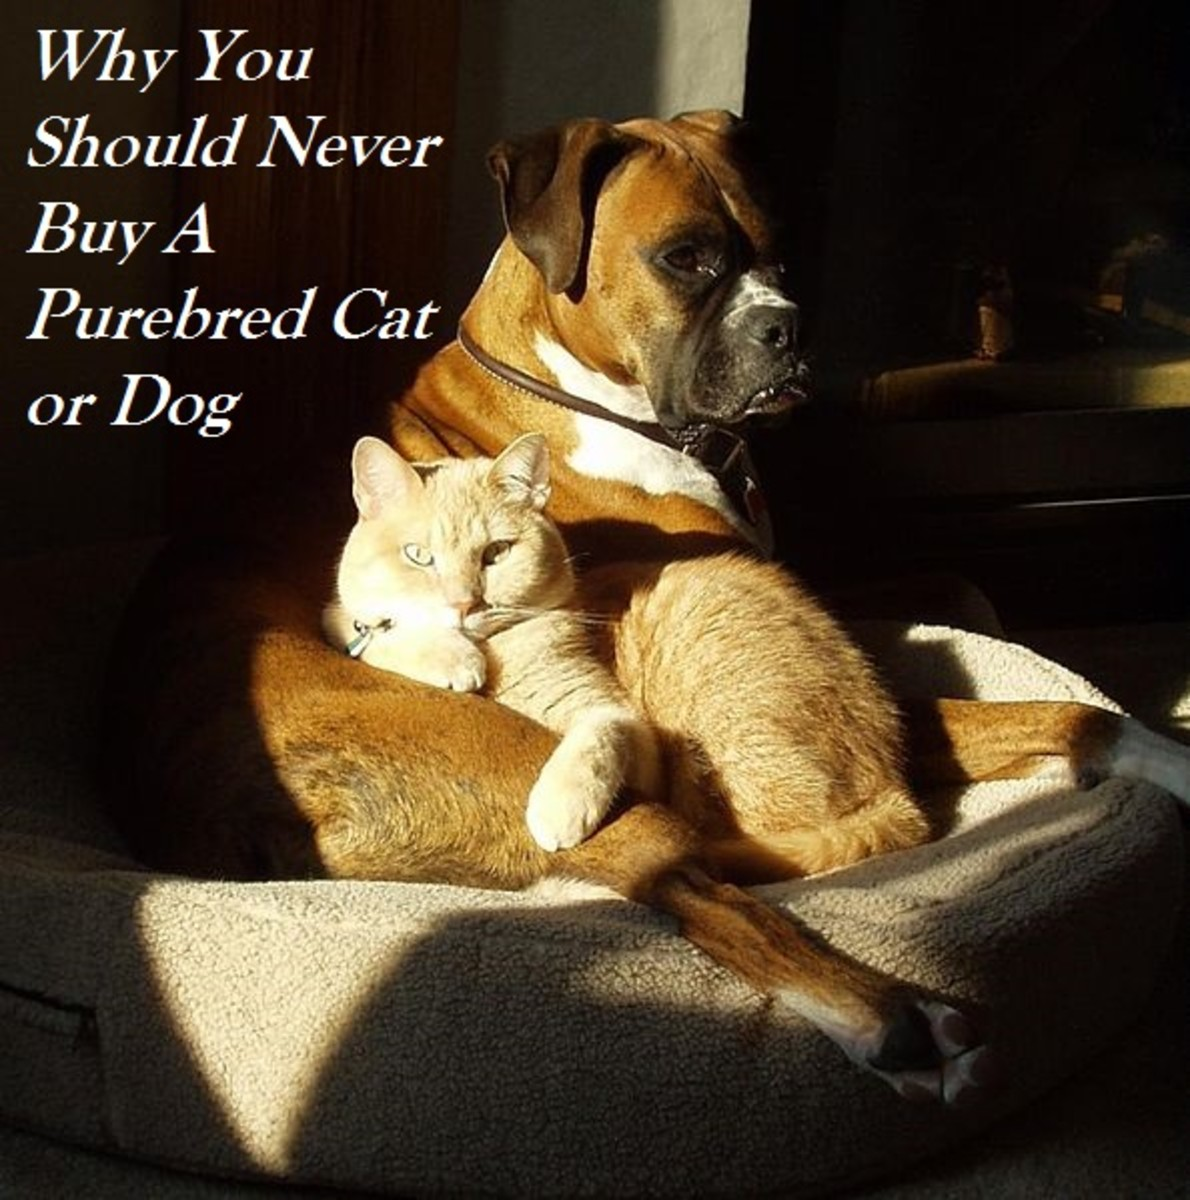 Why You Should Never Buy A Cat Or Dog